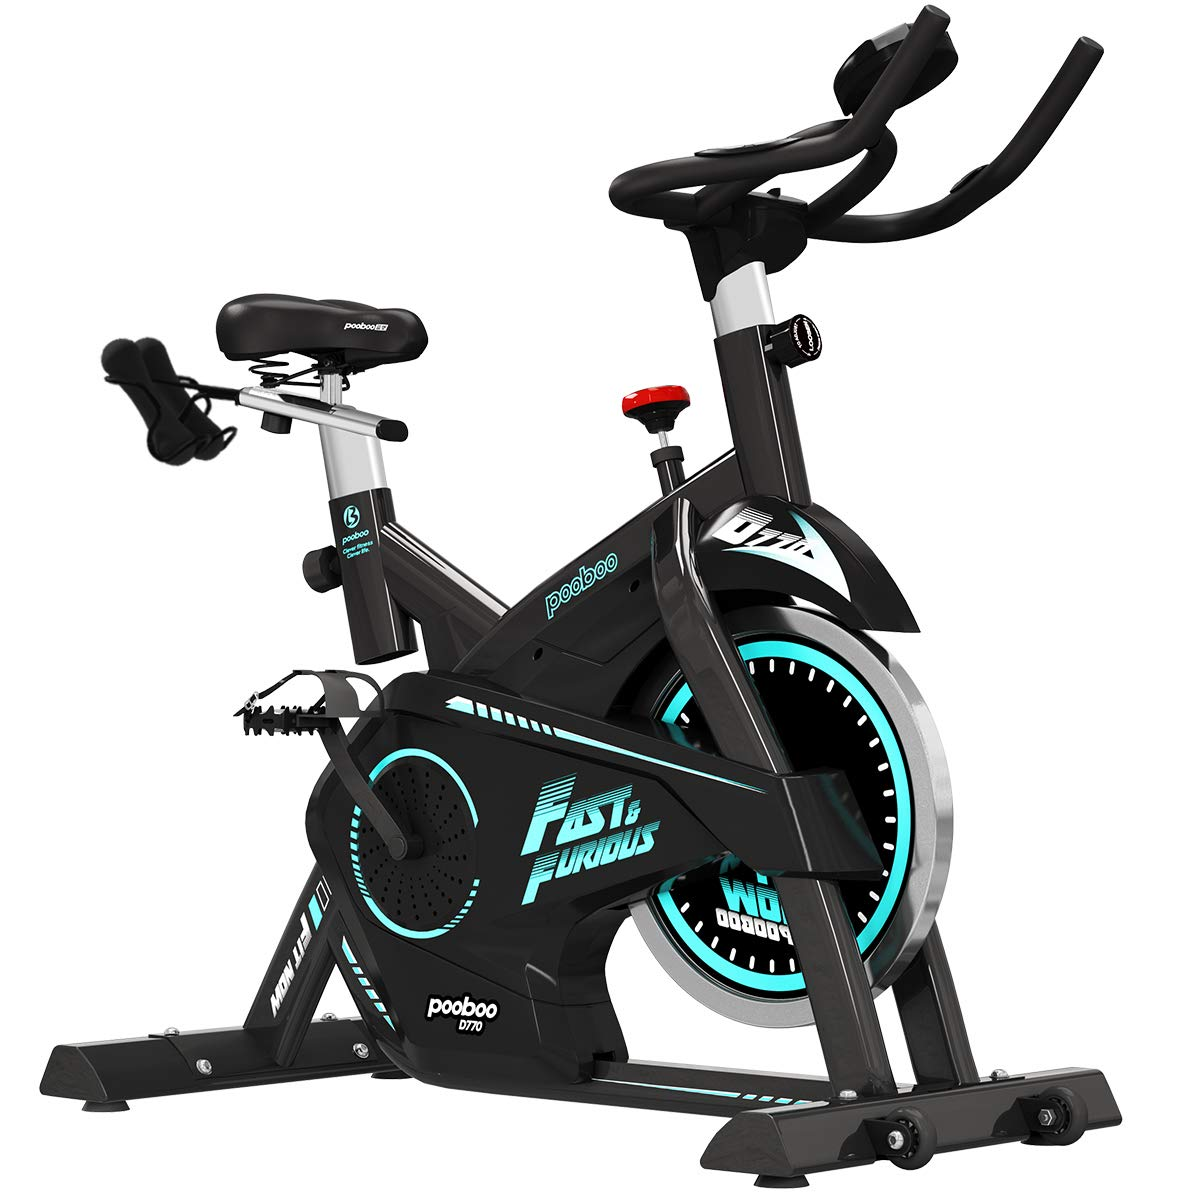 pooboo Pro Indoor Cycling Bike, Belt Drive Exercise Bikes,Stationary Exercise Bicycle LCD Display Heart Pulse Trainer Bike with Dumbbells Flywheel Smooth Quiet